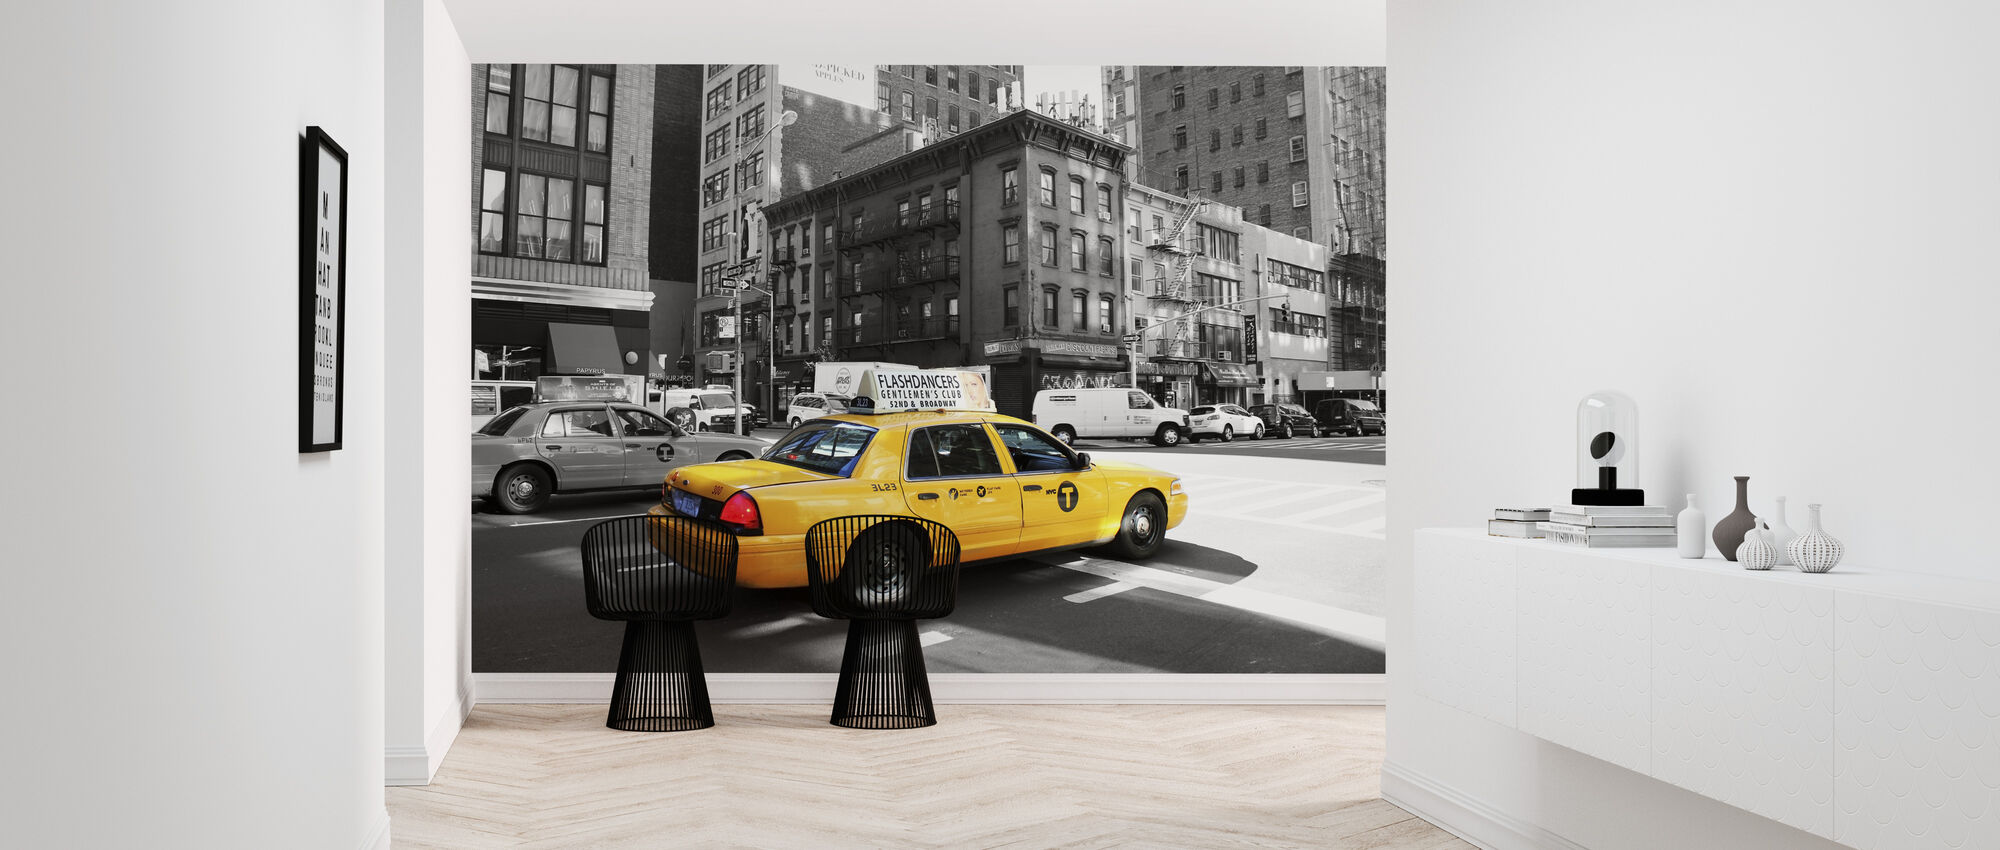 Taxi in the Street - Wallpaper - Hallway